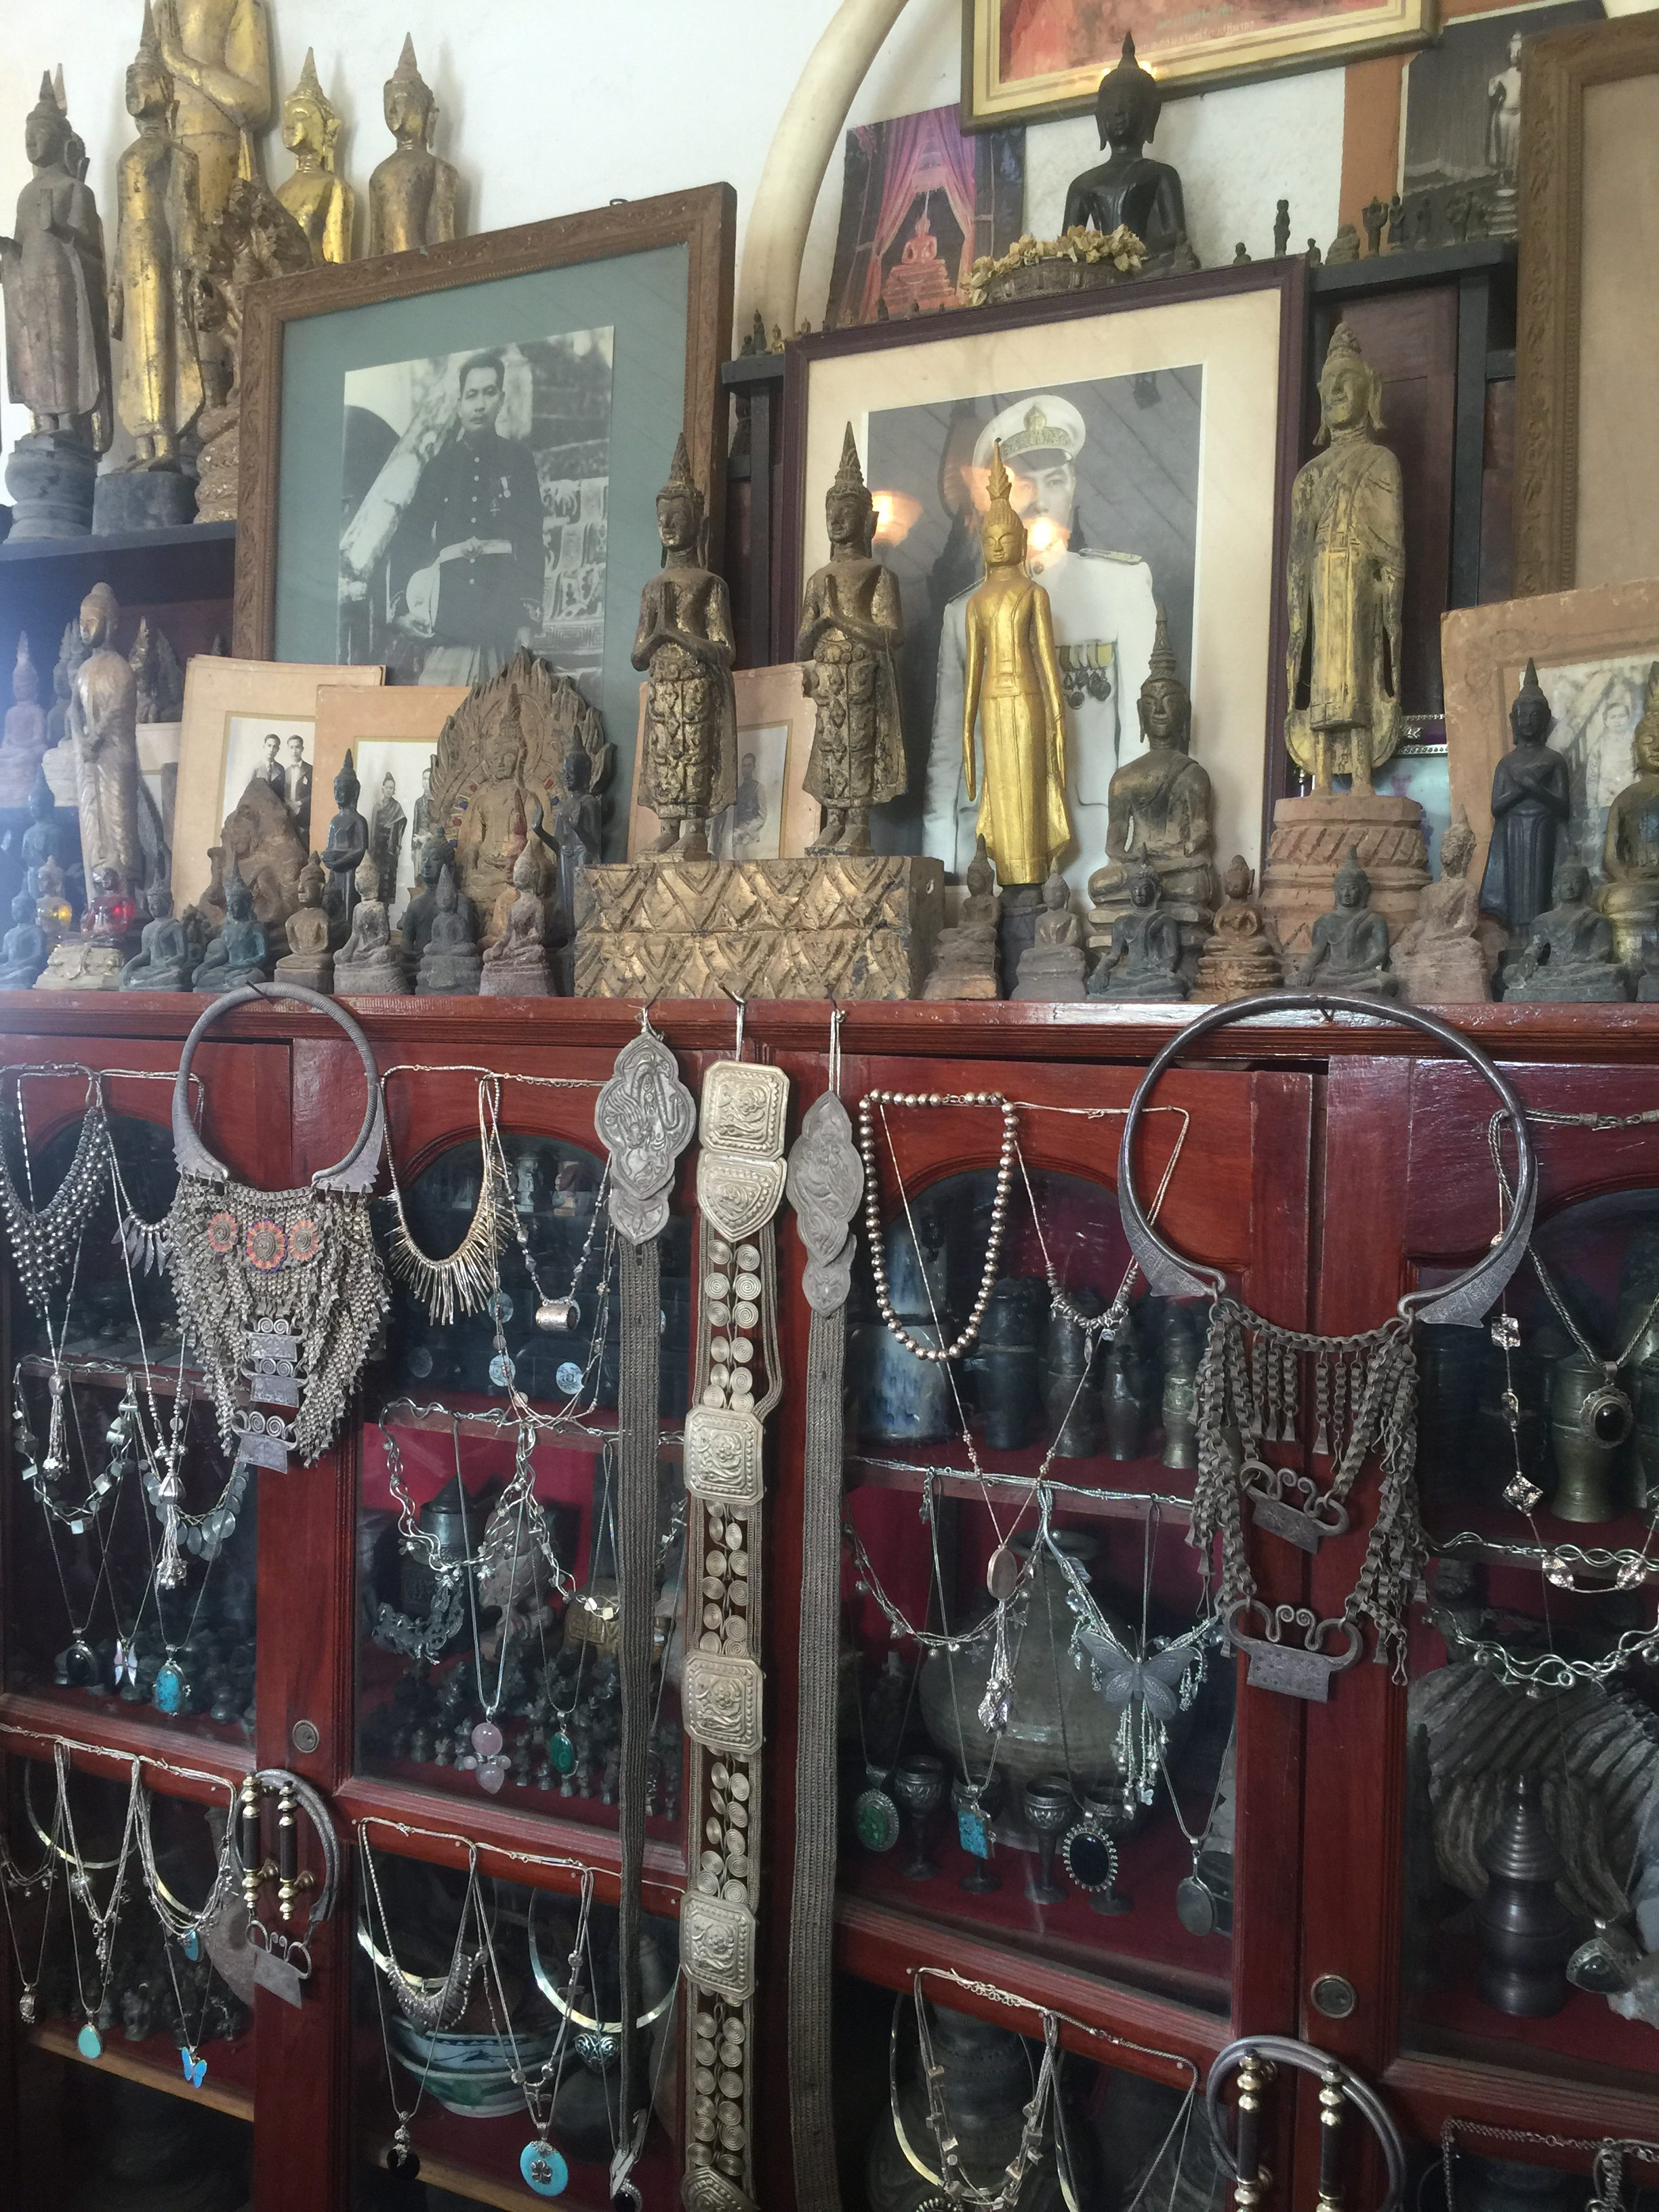 Antique Silver Jewelry and Buddha Statues Luang Prabang Laos Asia Antiques Buying Tours with The Antiques Diva